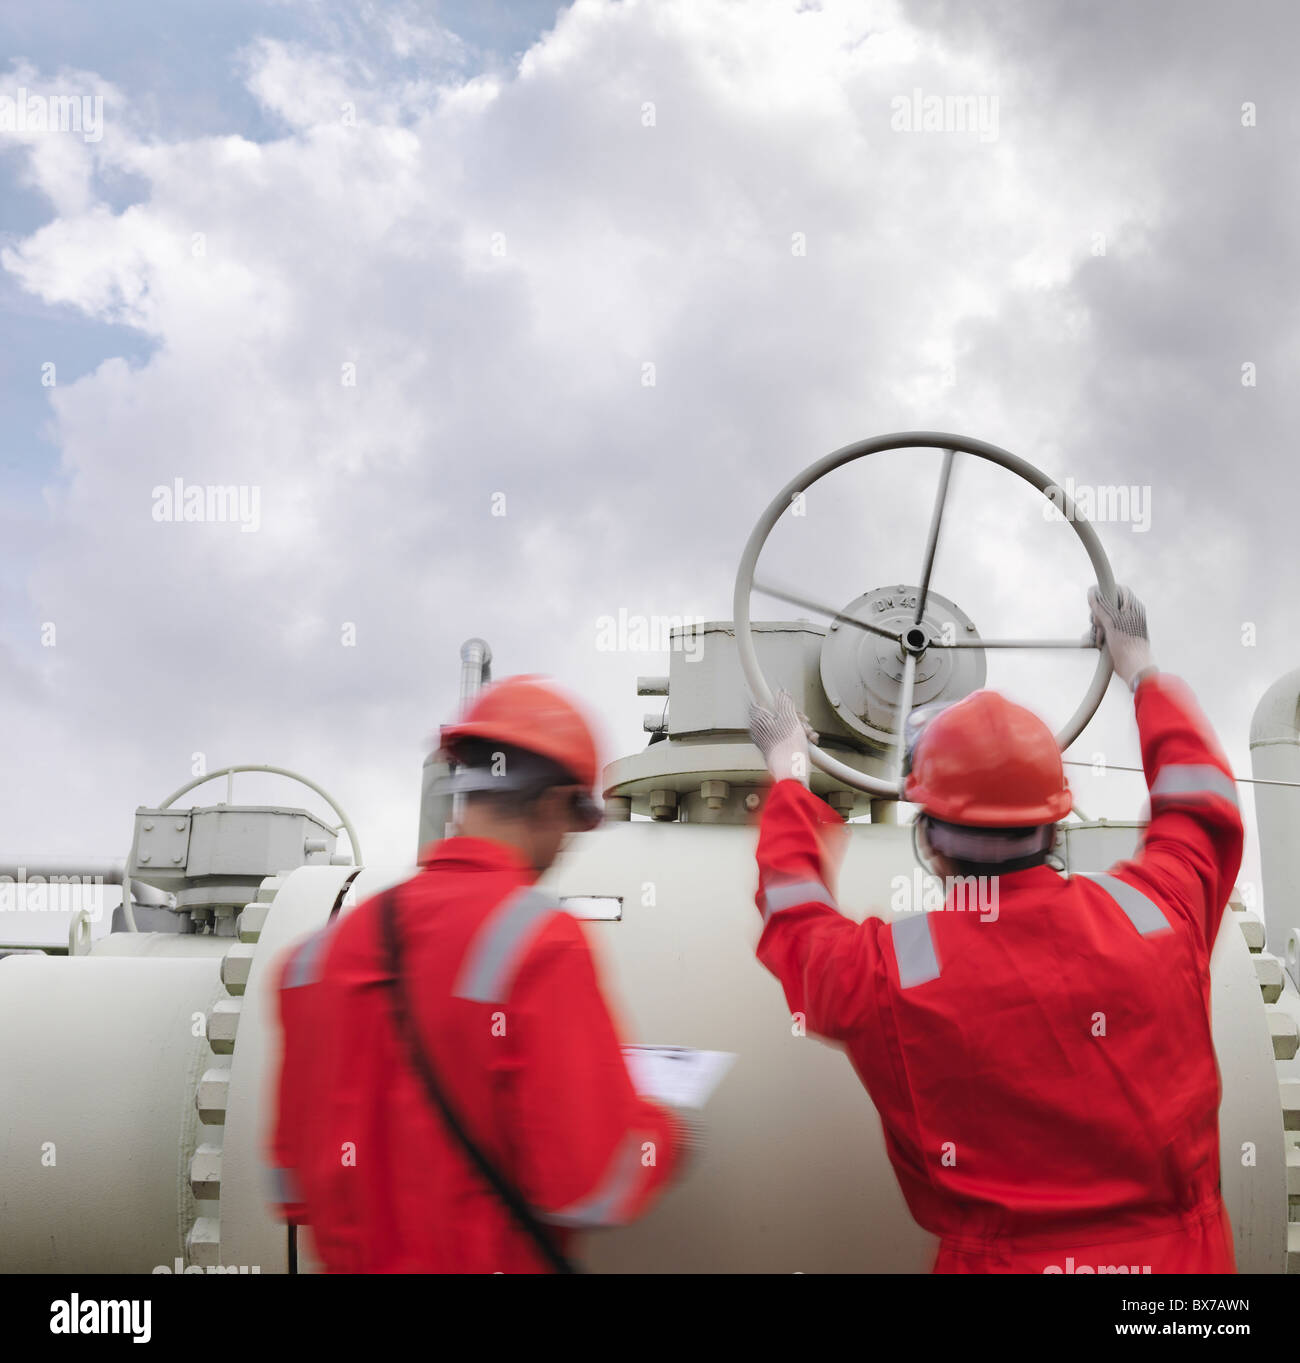 Workers with valve at gas storage plant - Stock Image